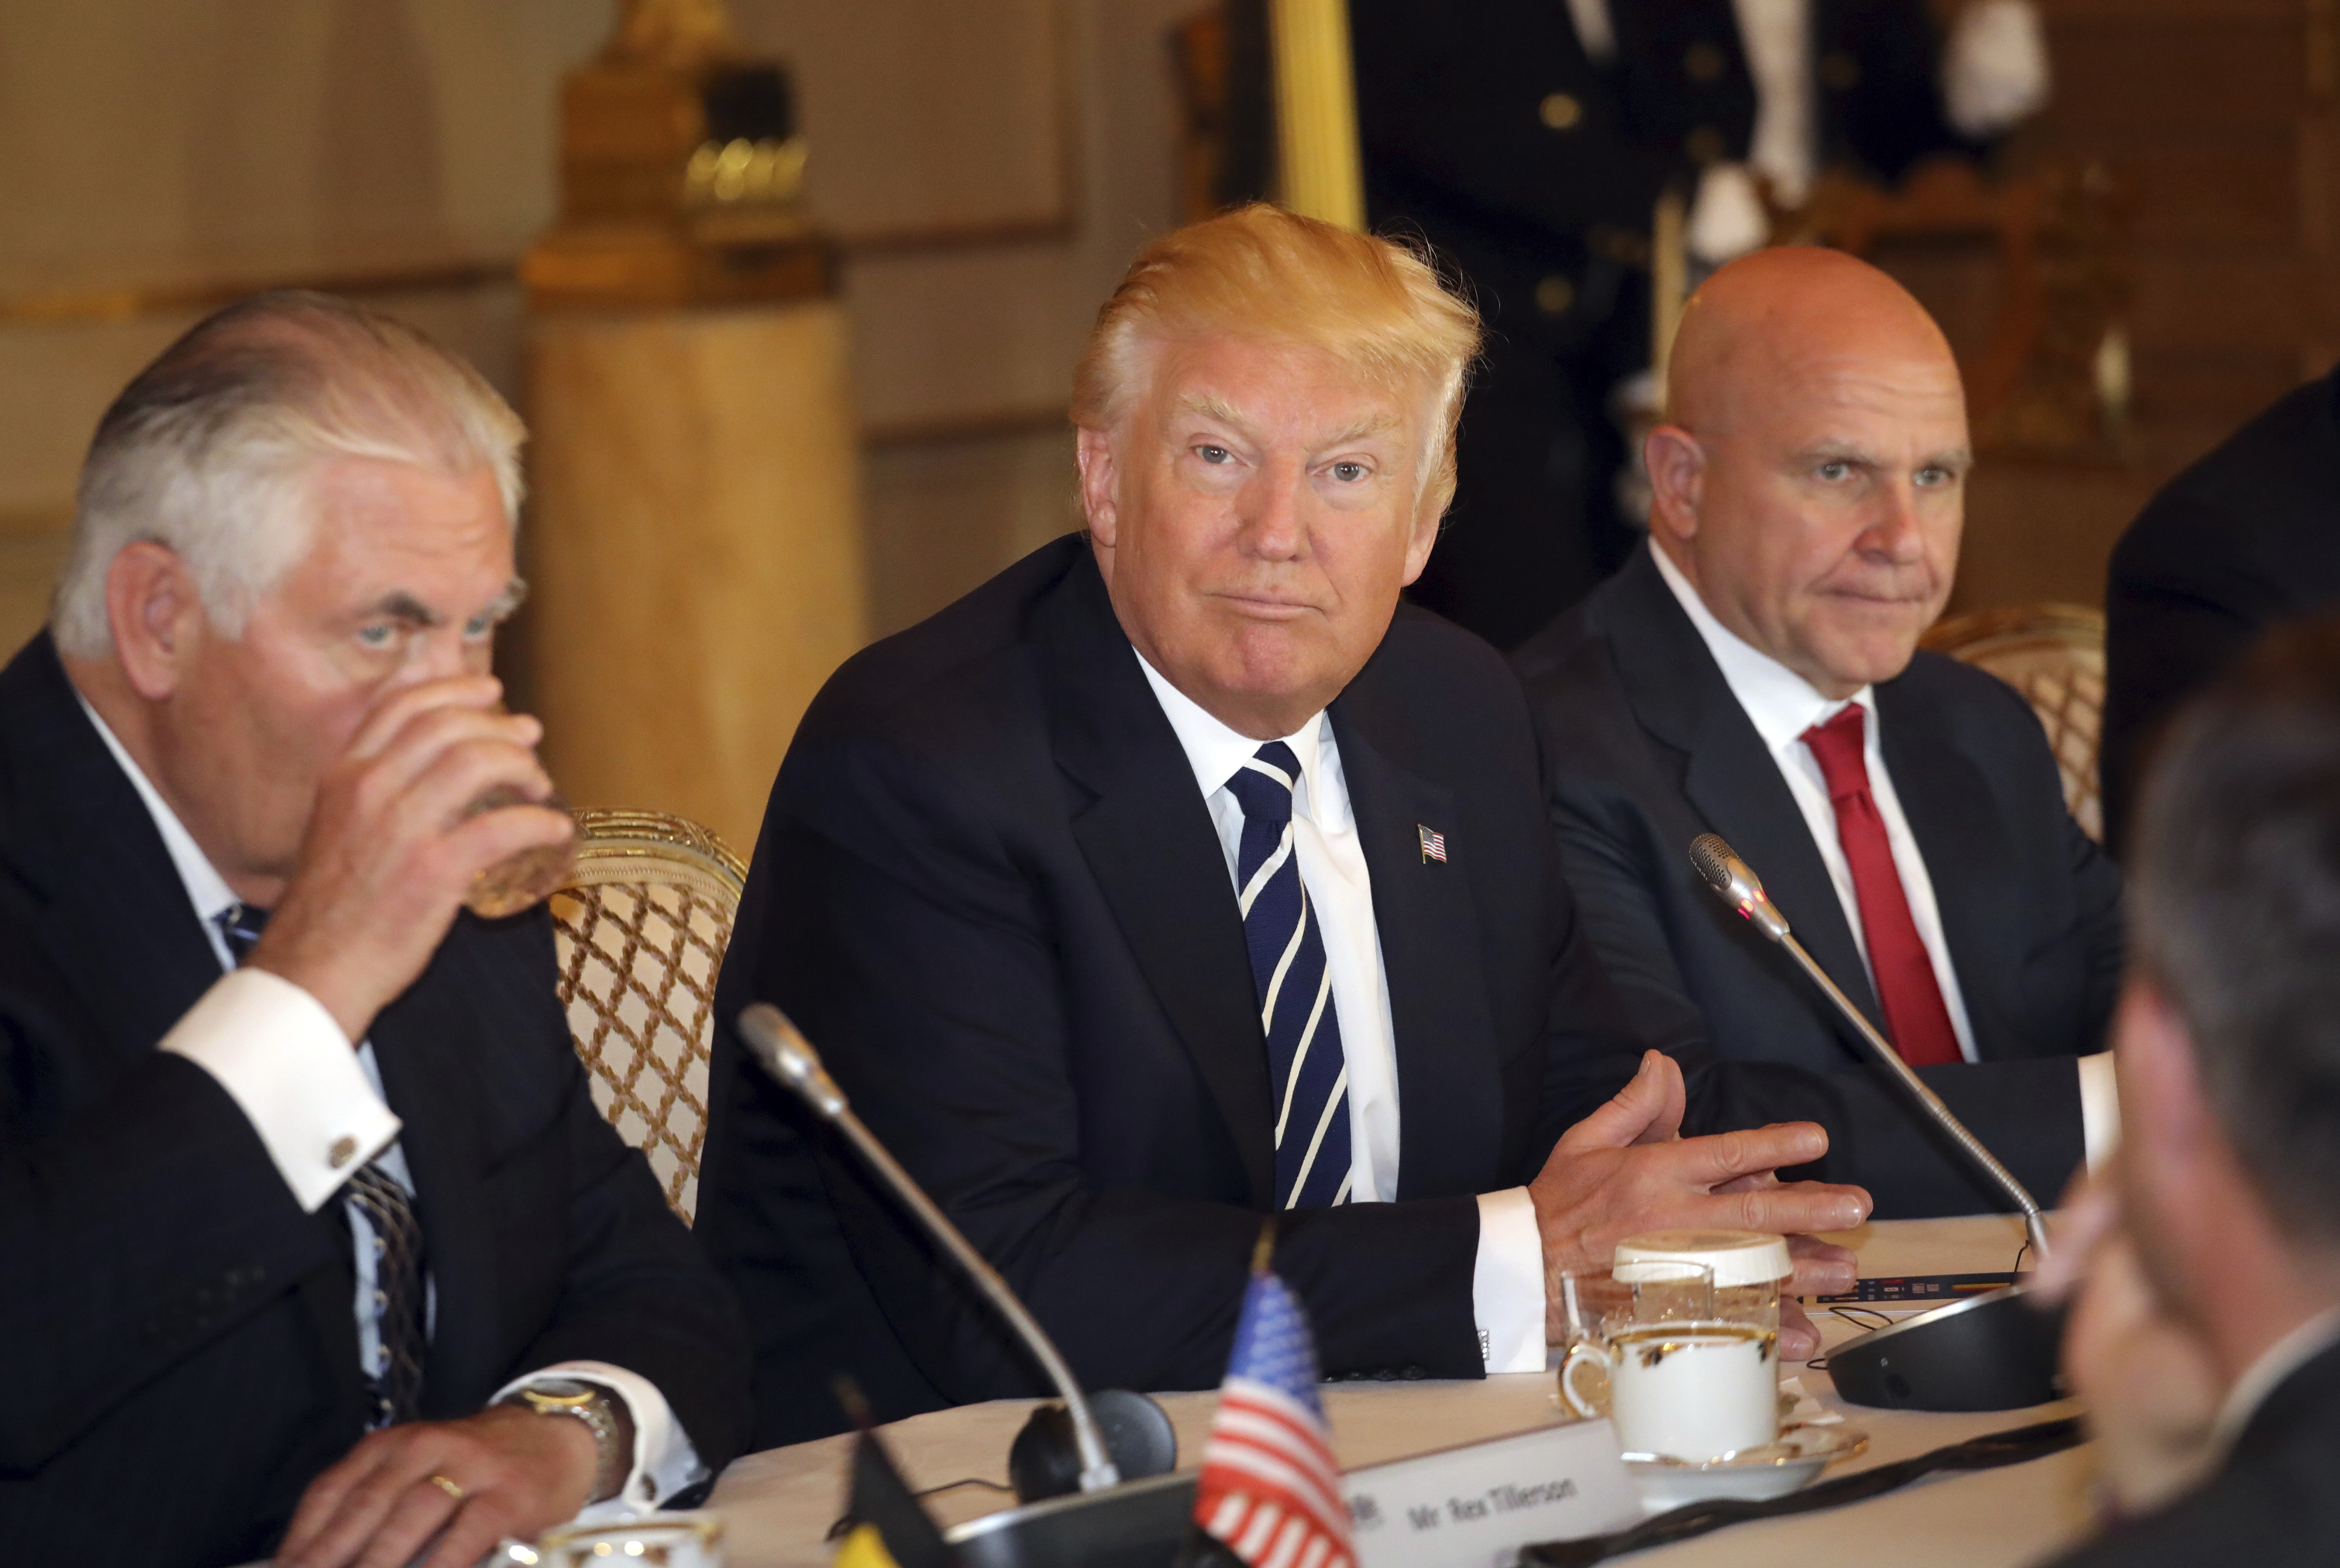 U.S. President Donald Trump, center, sits with then-Secretary of State Rex Tillerson, left, and then-National Security Adviser H.R. McMaster in Brussels, May 24, 2017.